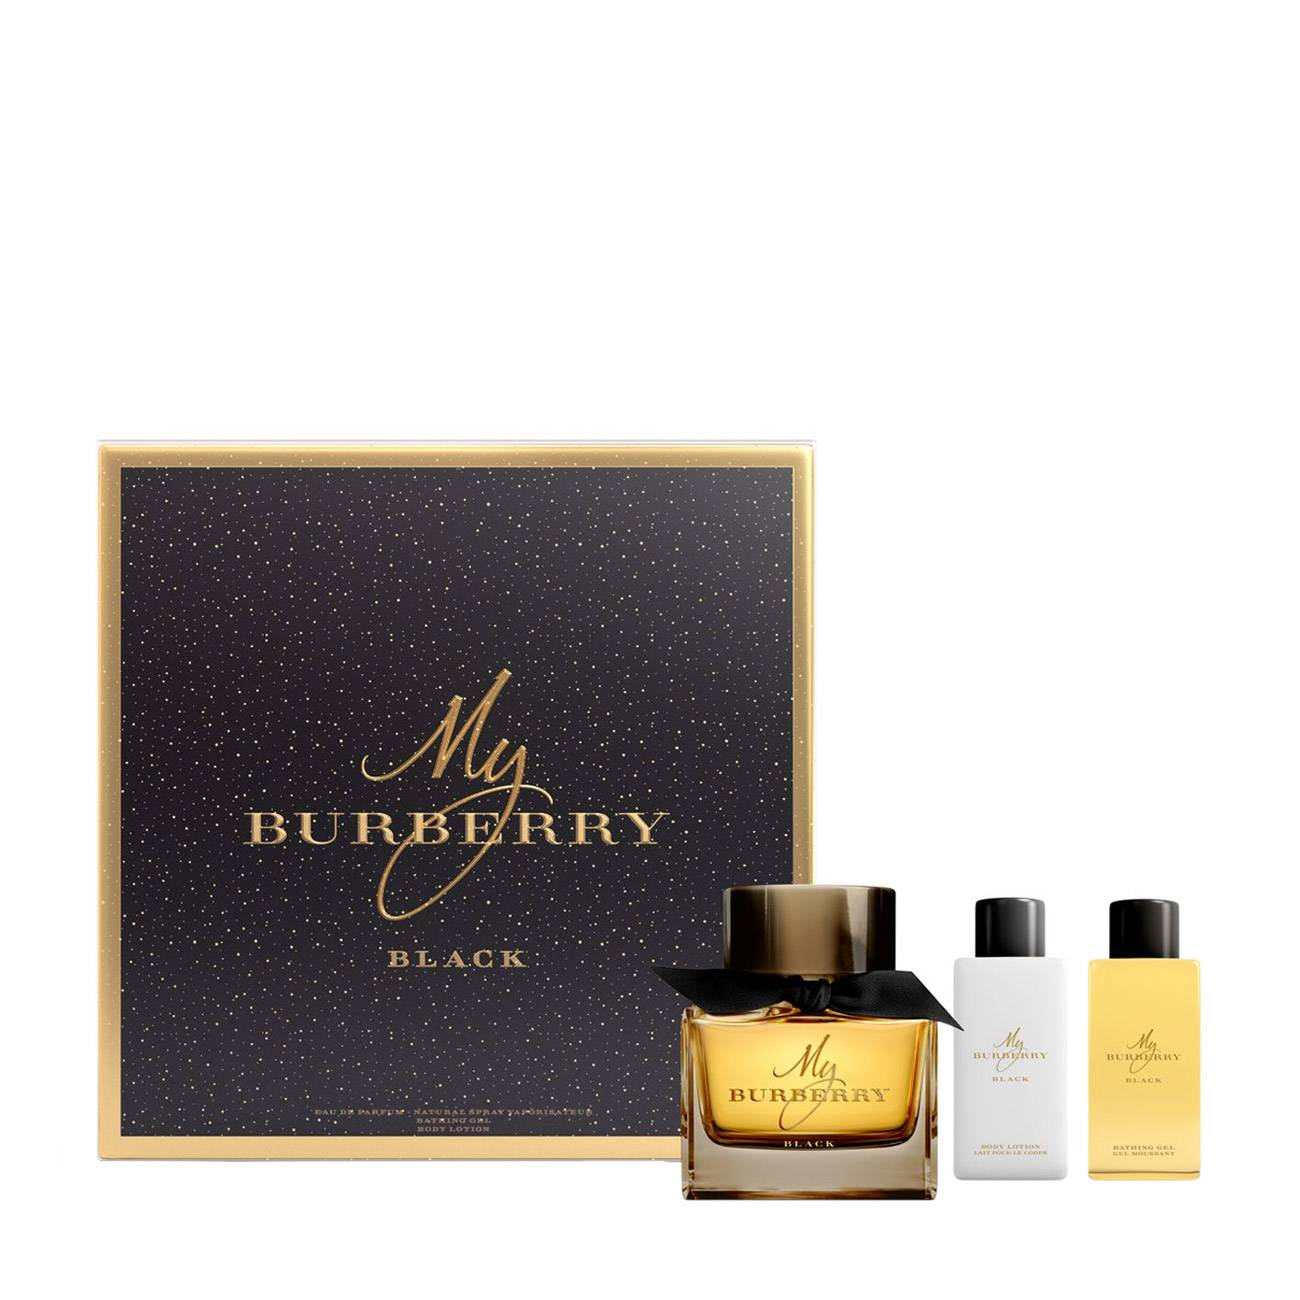 MY BURBERRY BLACK SET 240ml imagine produs